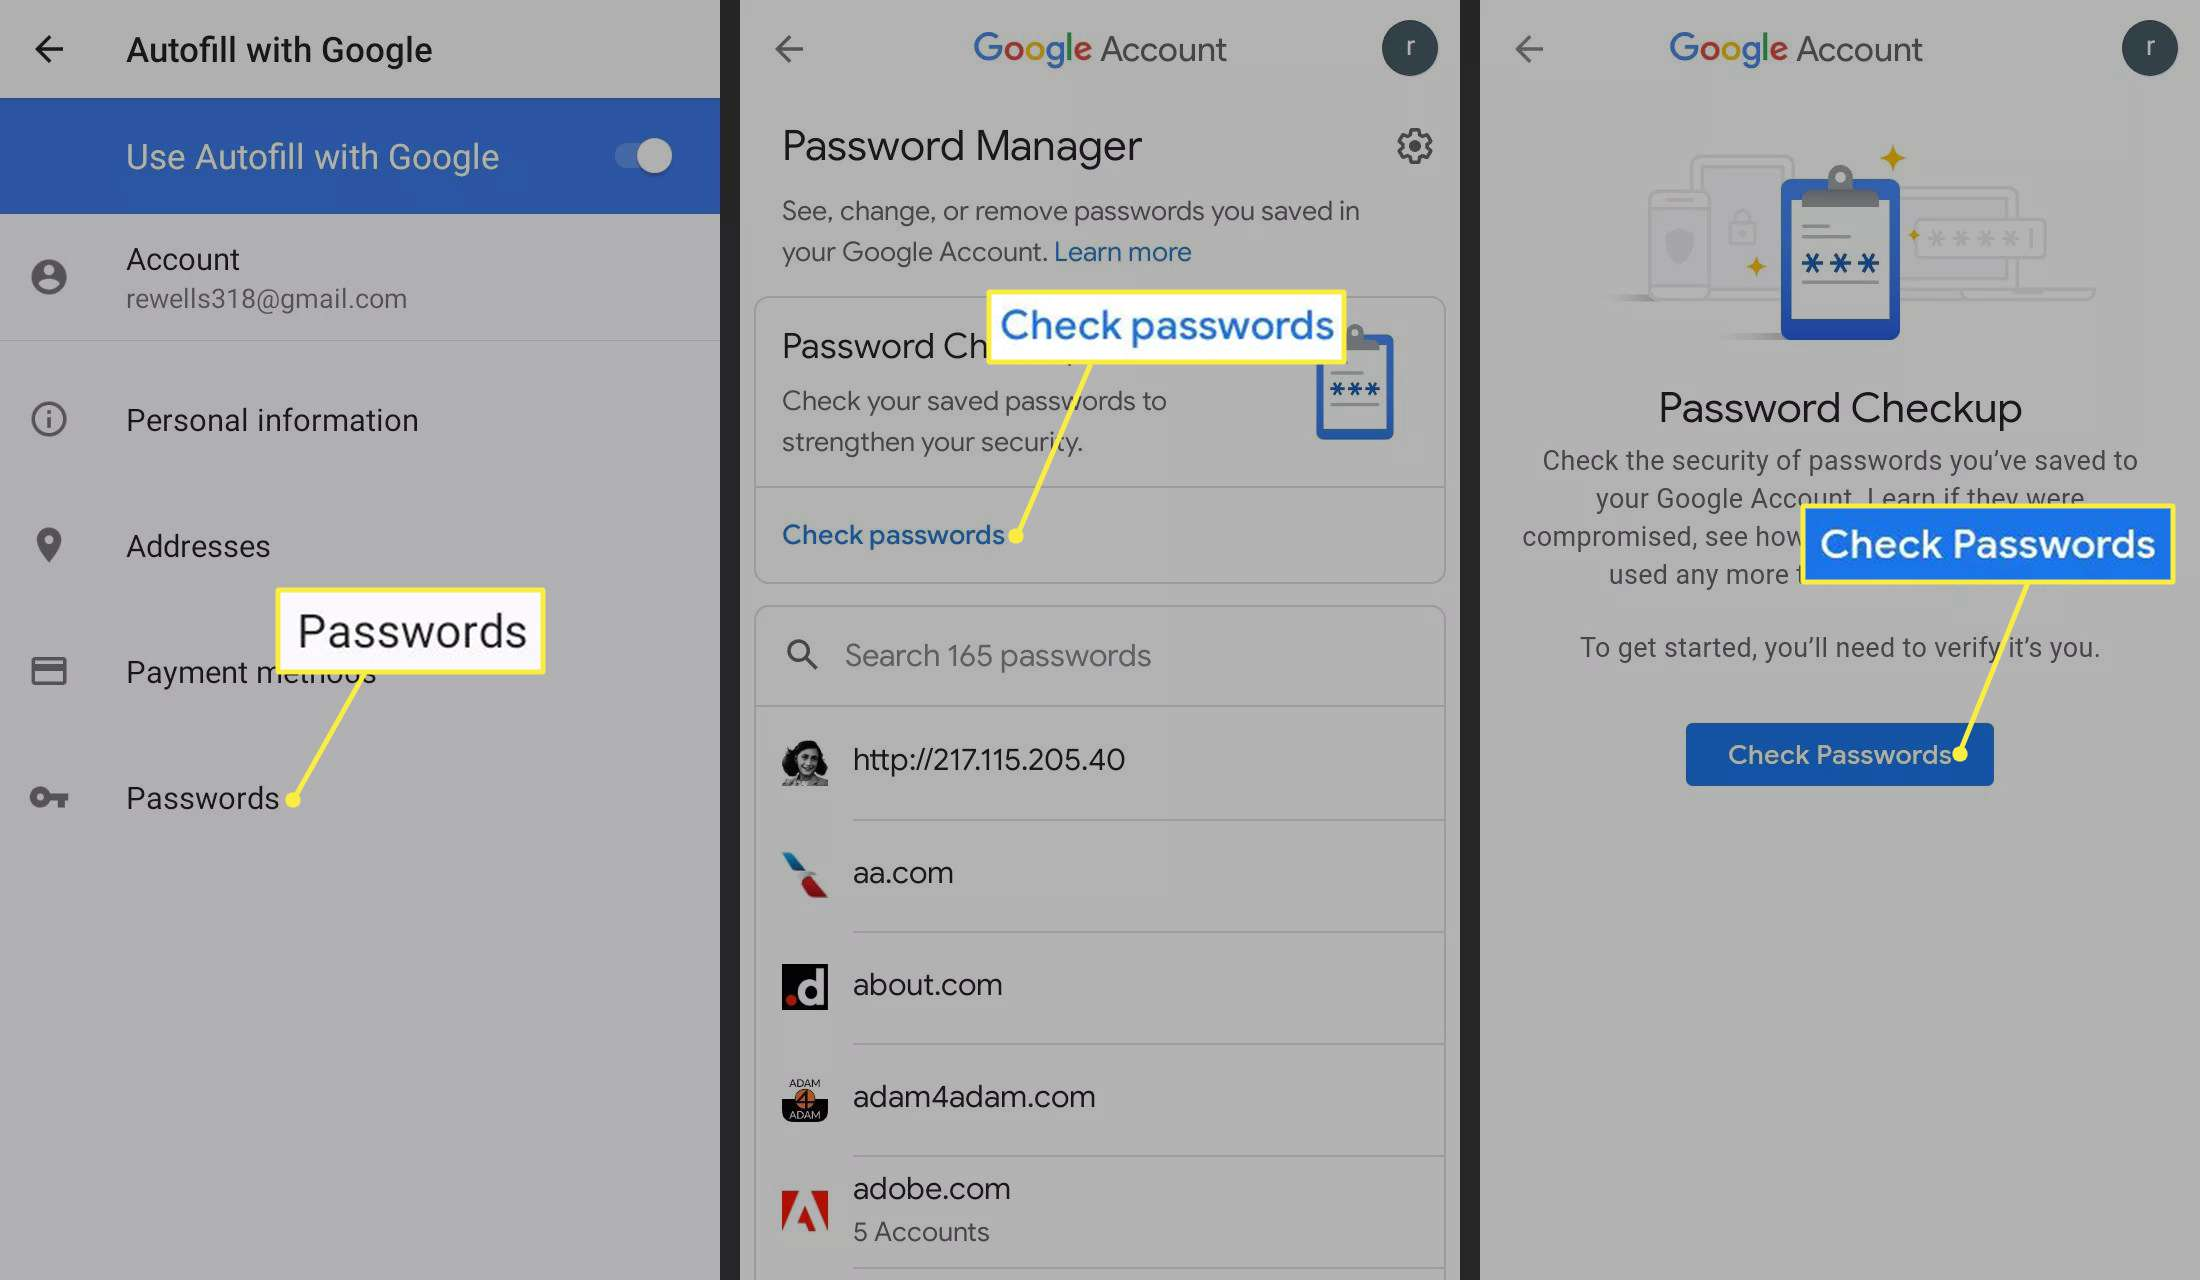 Passwords and Check passwords highlighted in Android Settings